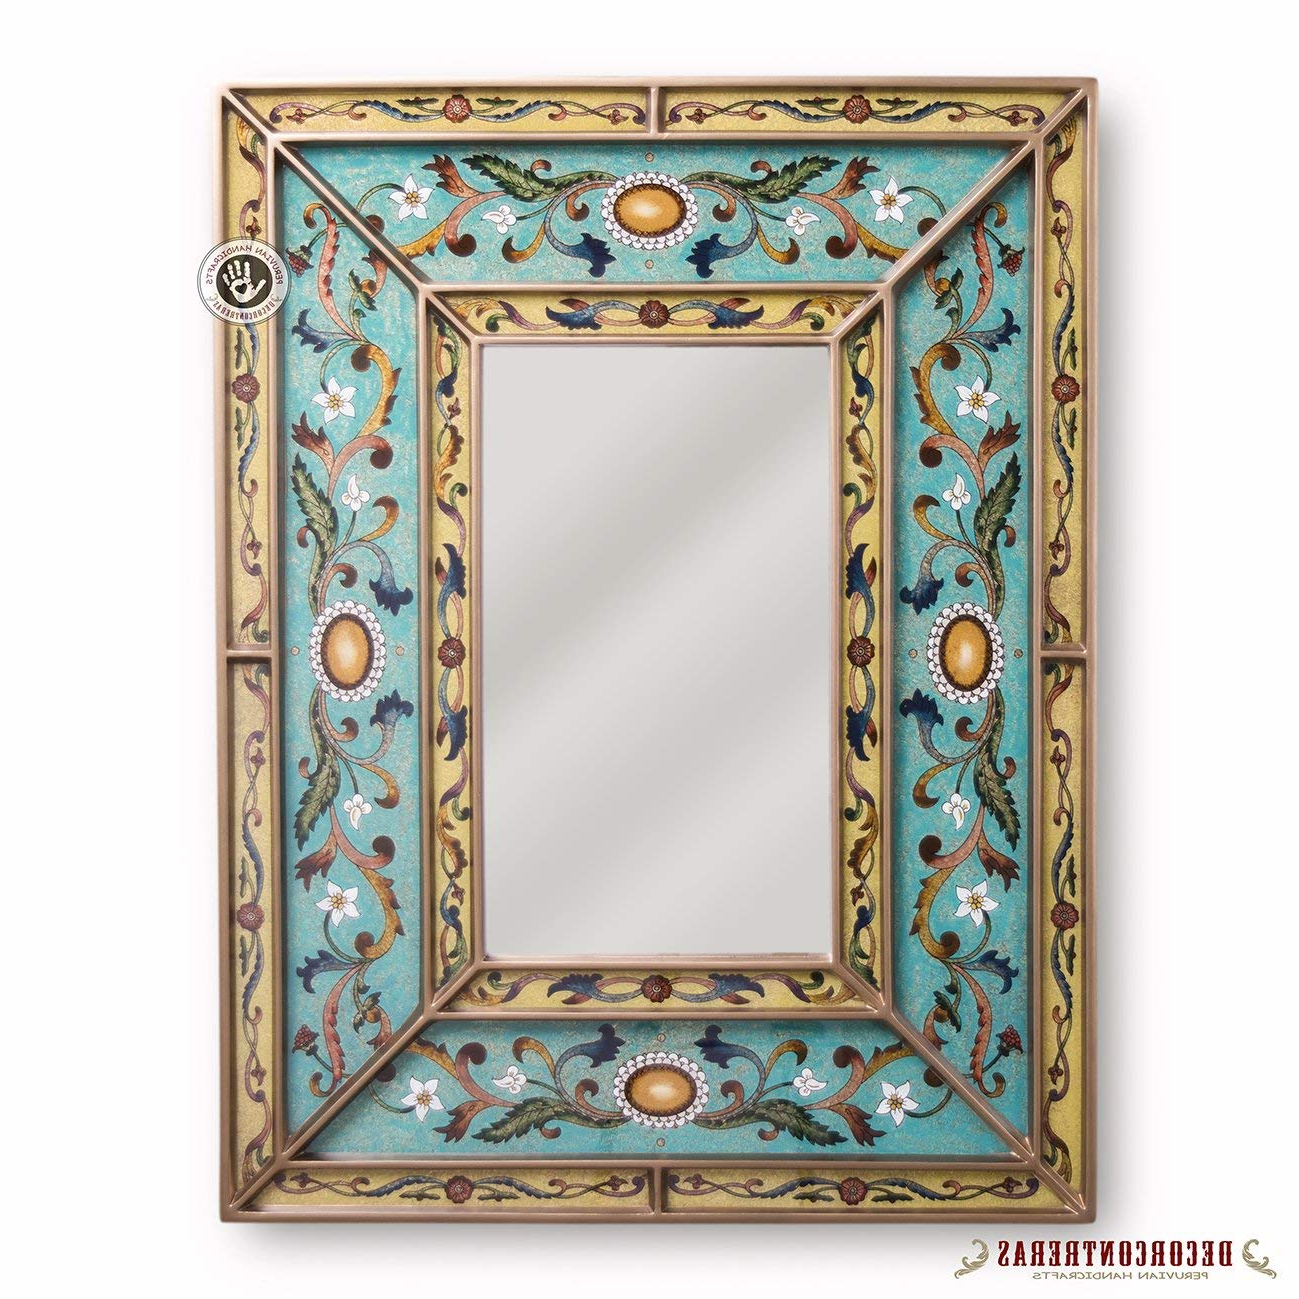 Hand Painted Wall Mirrors Pertaining To Most Up To Date Amazon: Peruvian Decorative Mirror, Arts Crafts Mirror Wall (Gallery 7 of 20)